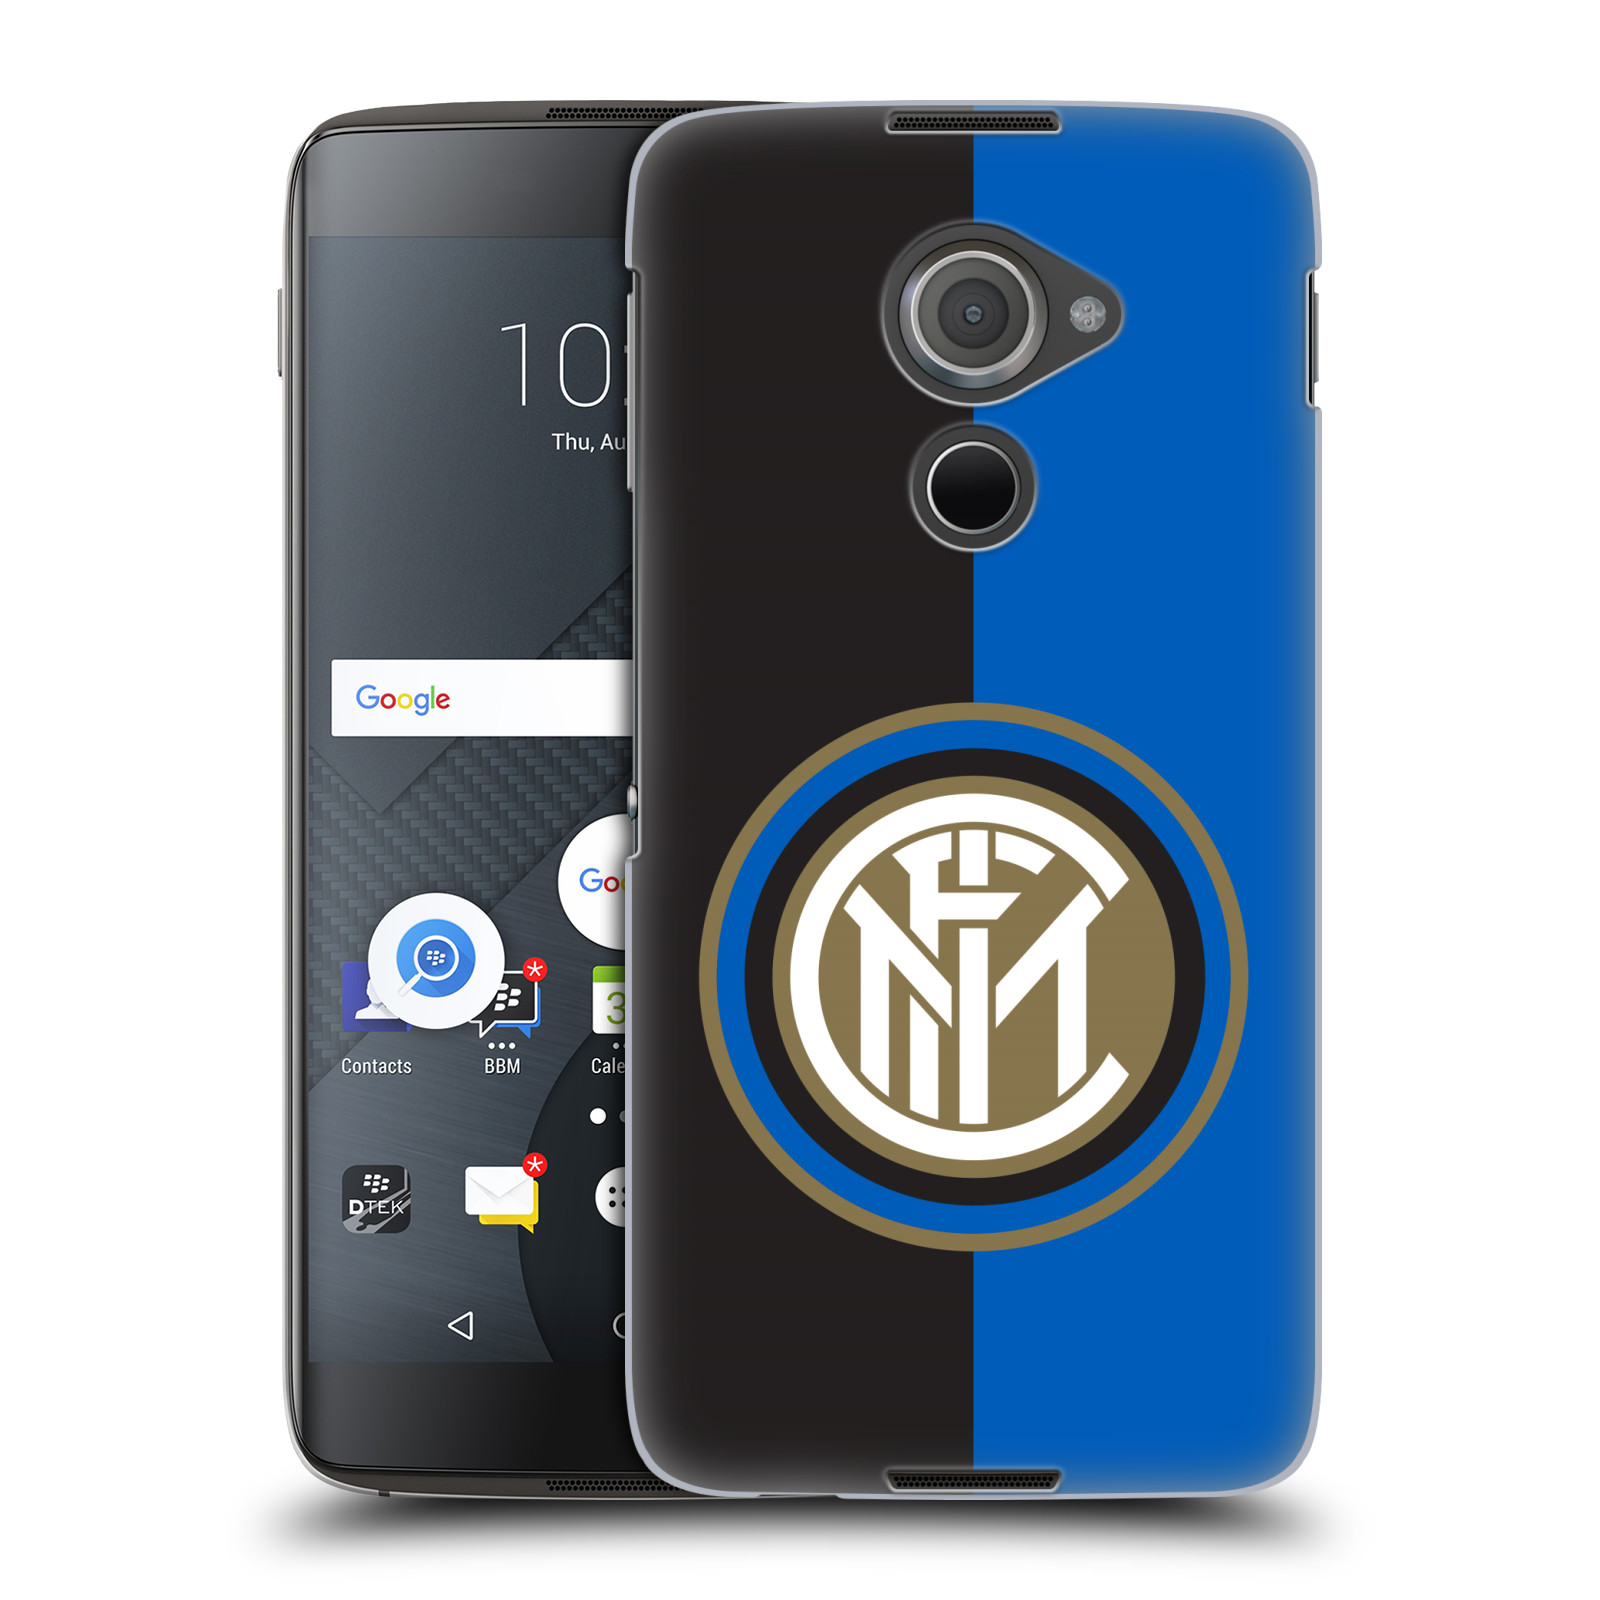 Plastové pouzdro na mobil Blackberry DTEK60 (Argon) - Head Case - Inter Milan - Black and blue